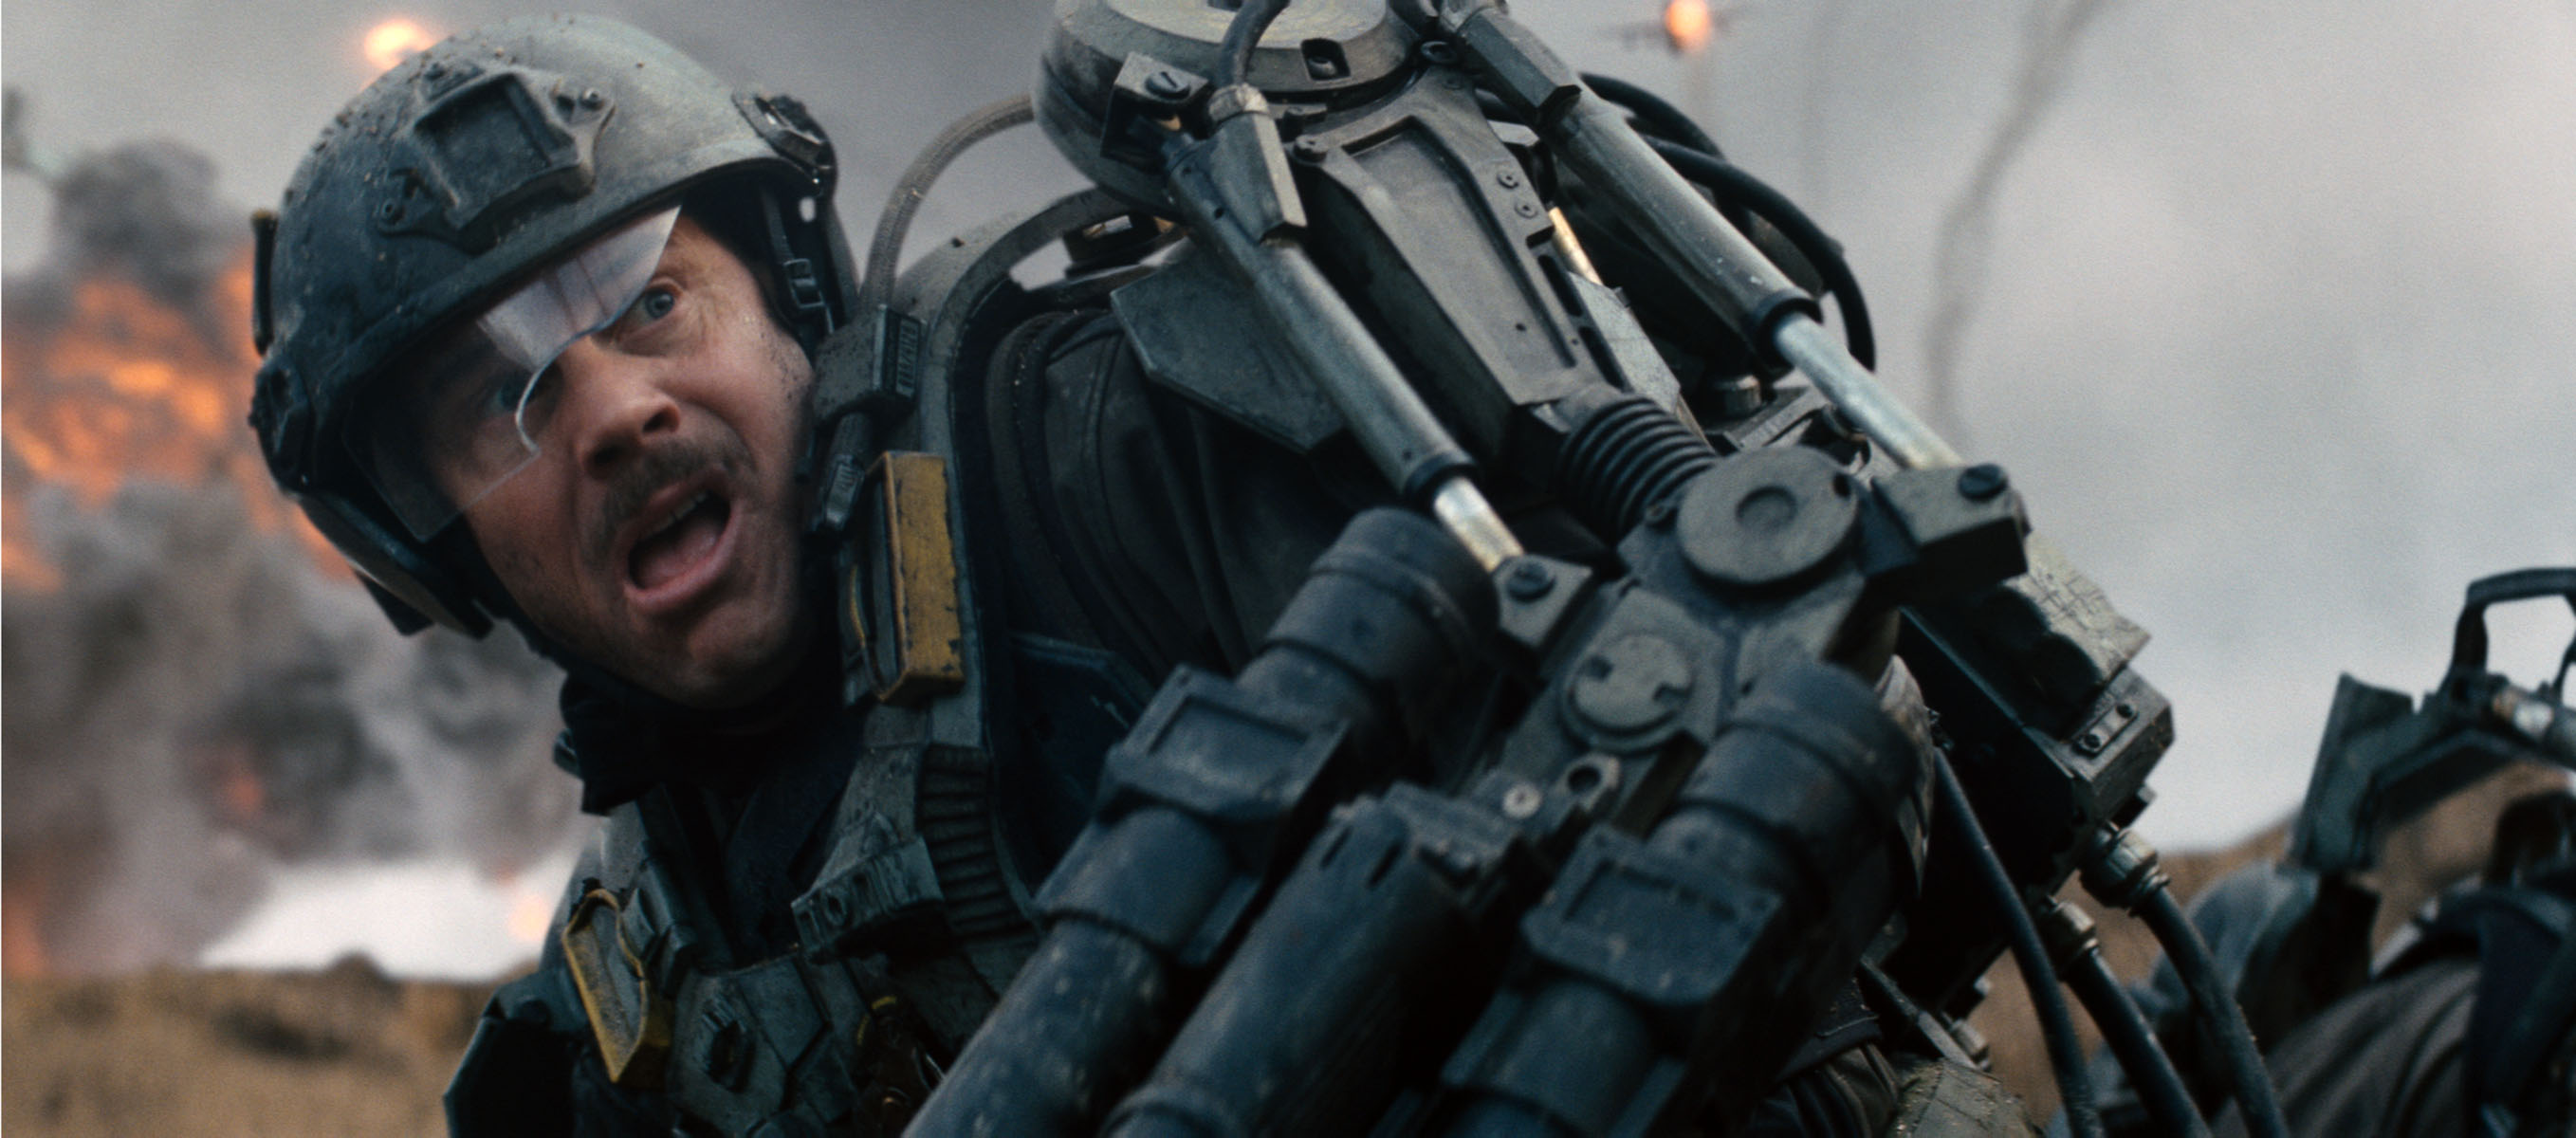 27 Edge Of Tomorrow Images Featuring Tom Cruise And Emily Blunt